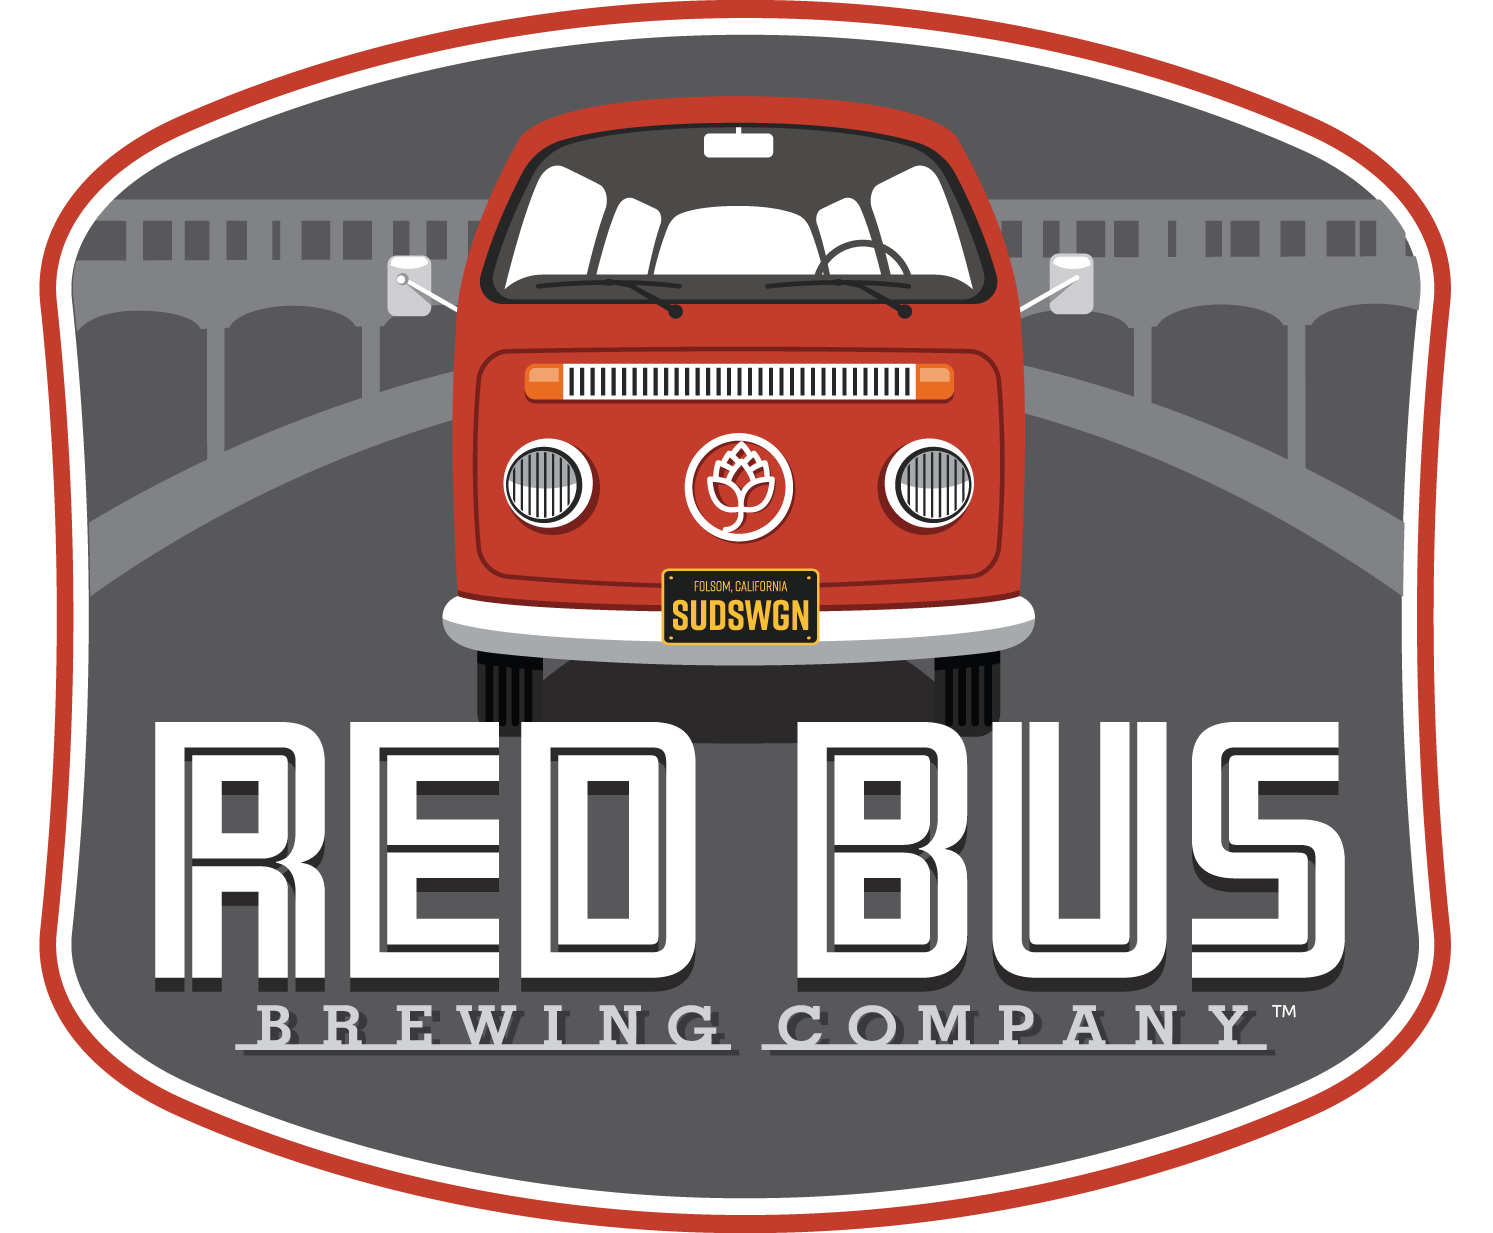 Red Bus Brewing